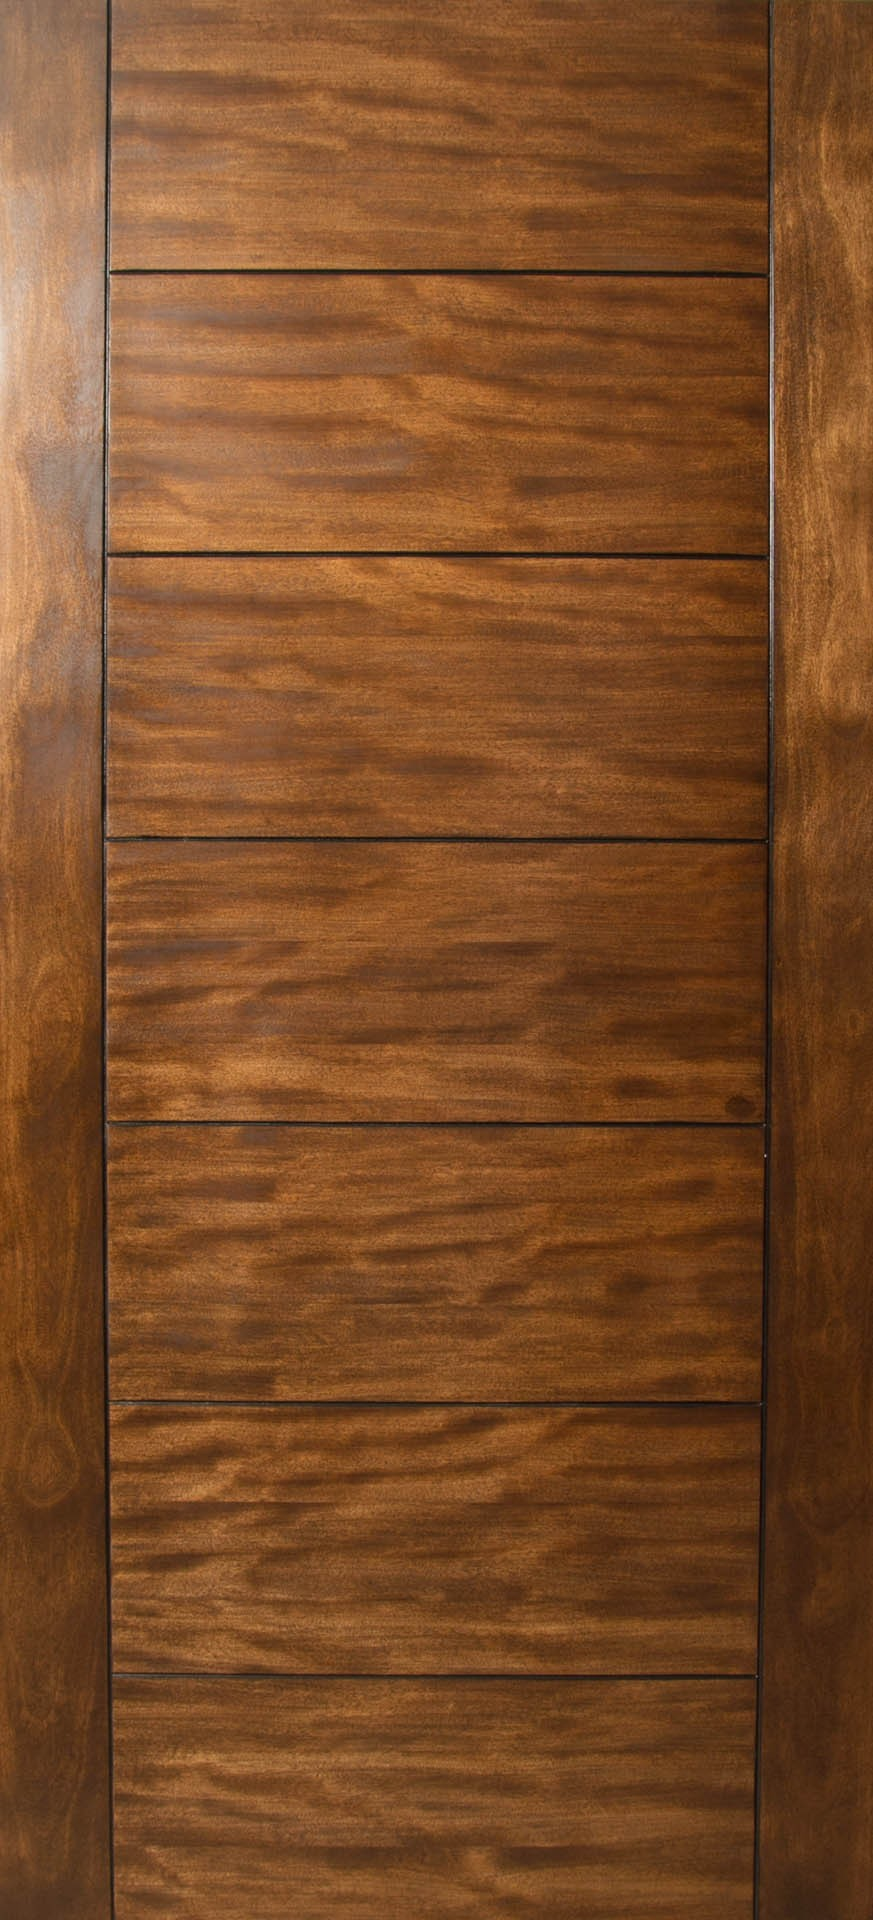 Modern Exterior Doors Sulcus - Multi Horizontal Plank Wood Door W/ Vertical